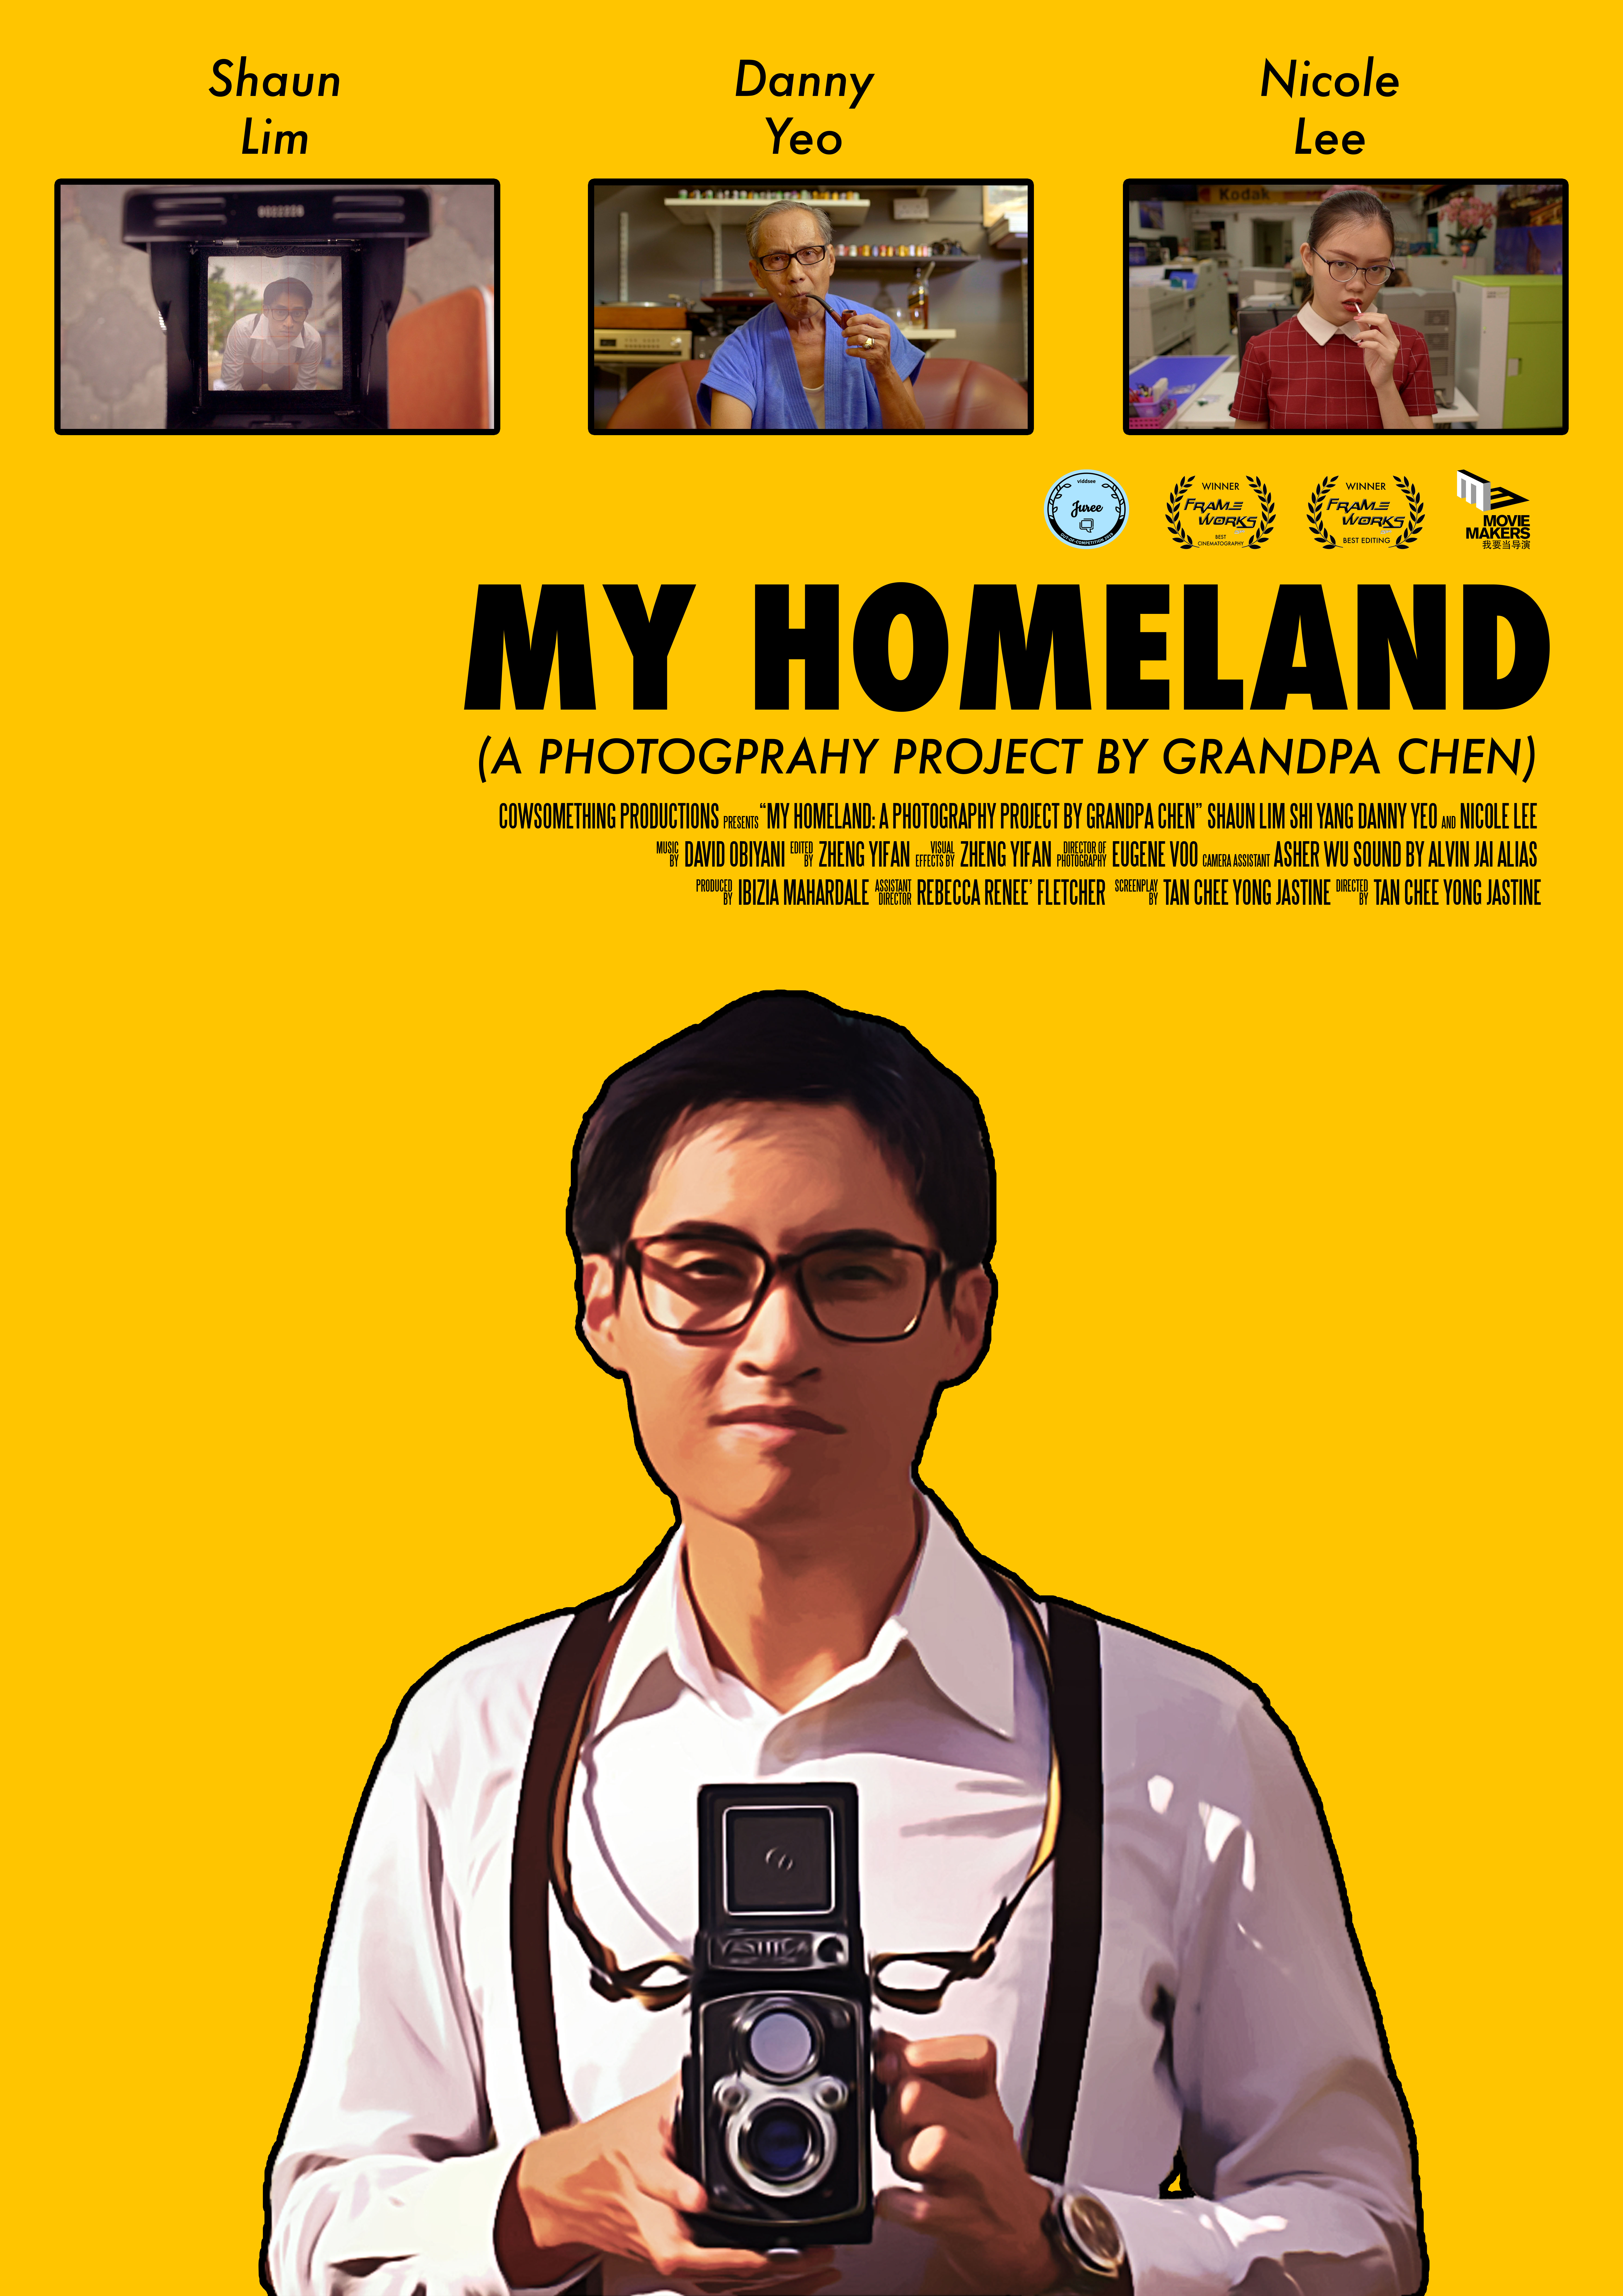 My Homeland: A Photography Project by Grandpa Chen